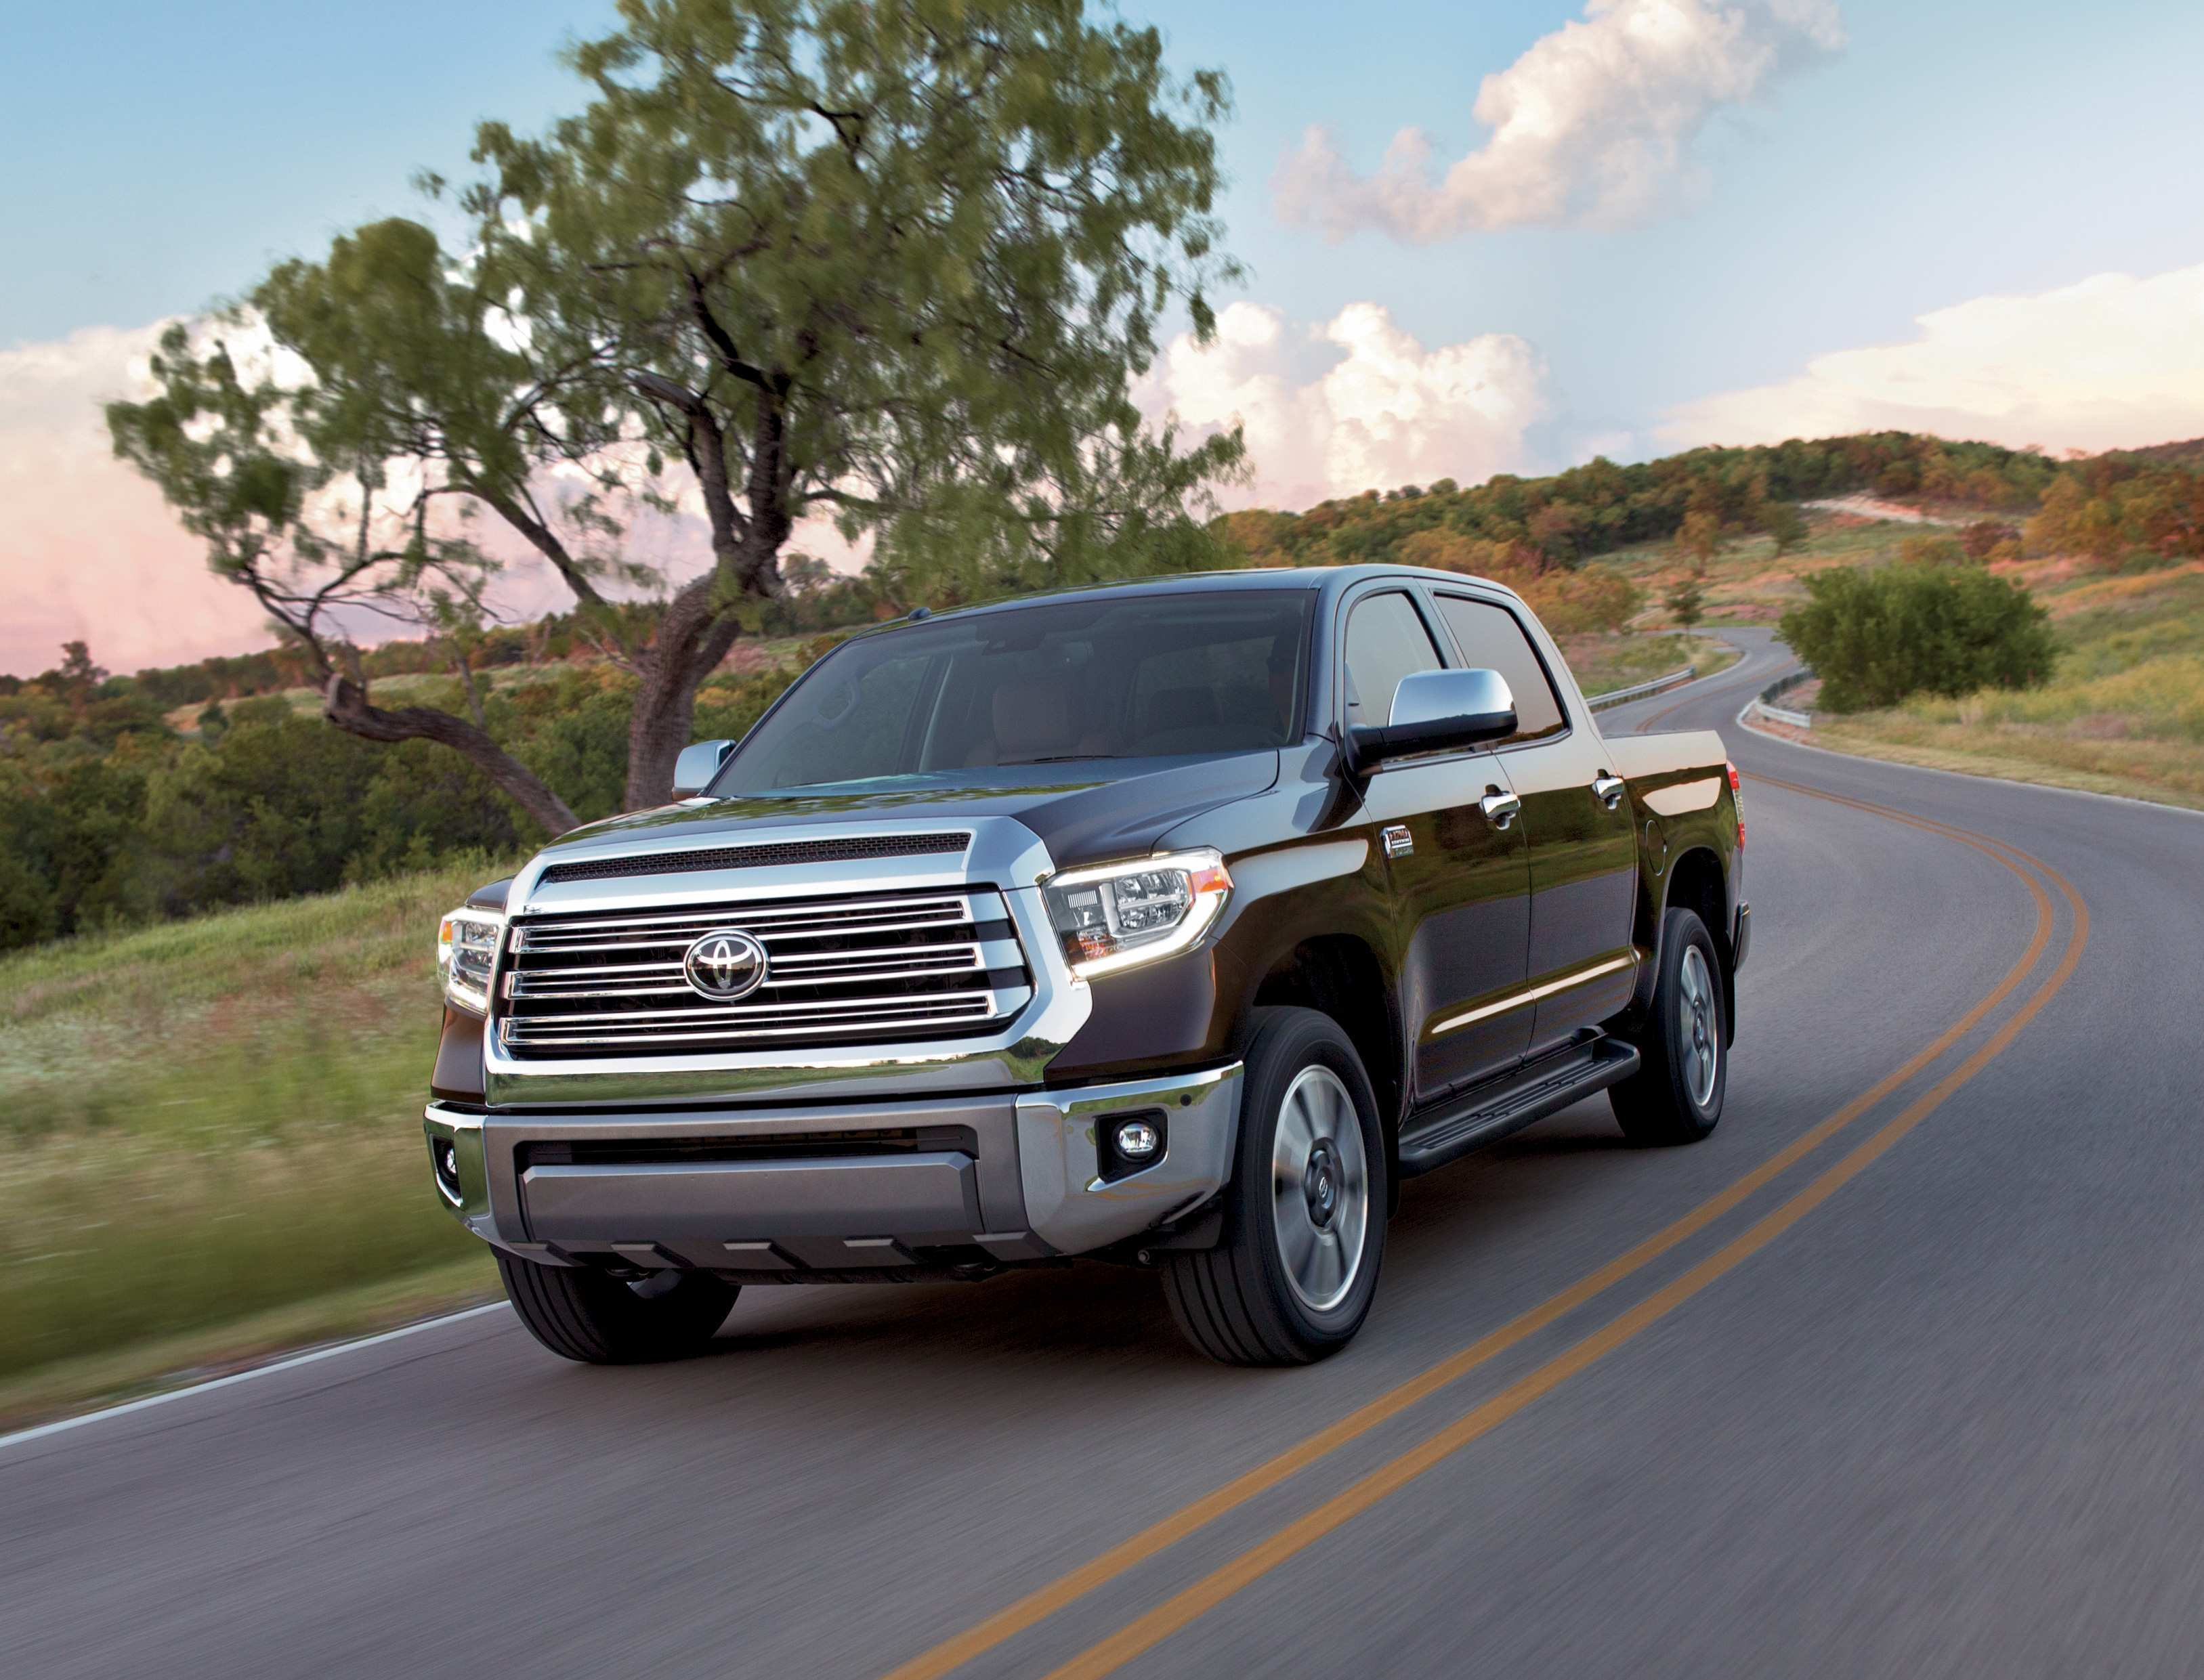 85 Great 2019 Toyota Tundra Update Wallpaper for 2019 Toyota Tundra Update